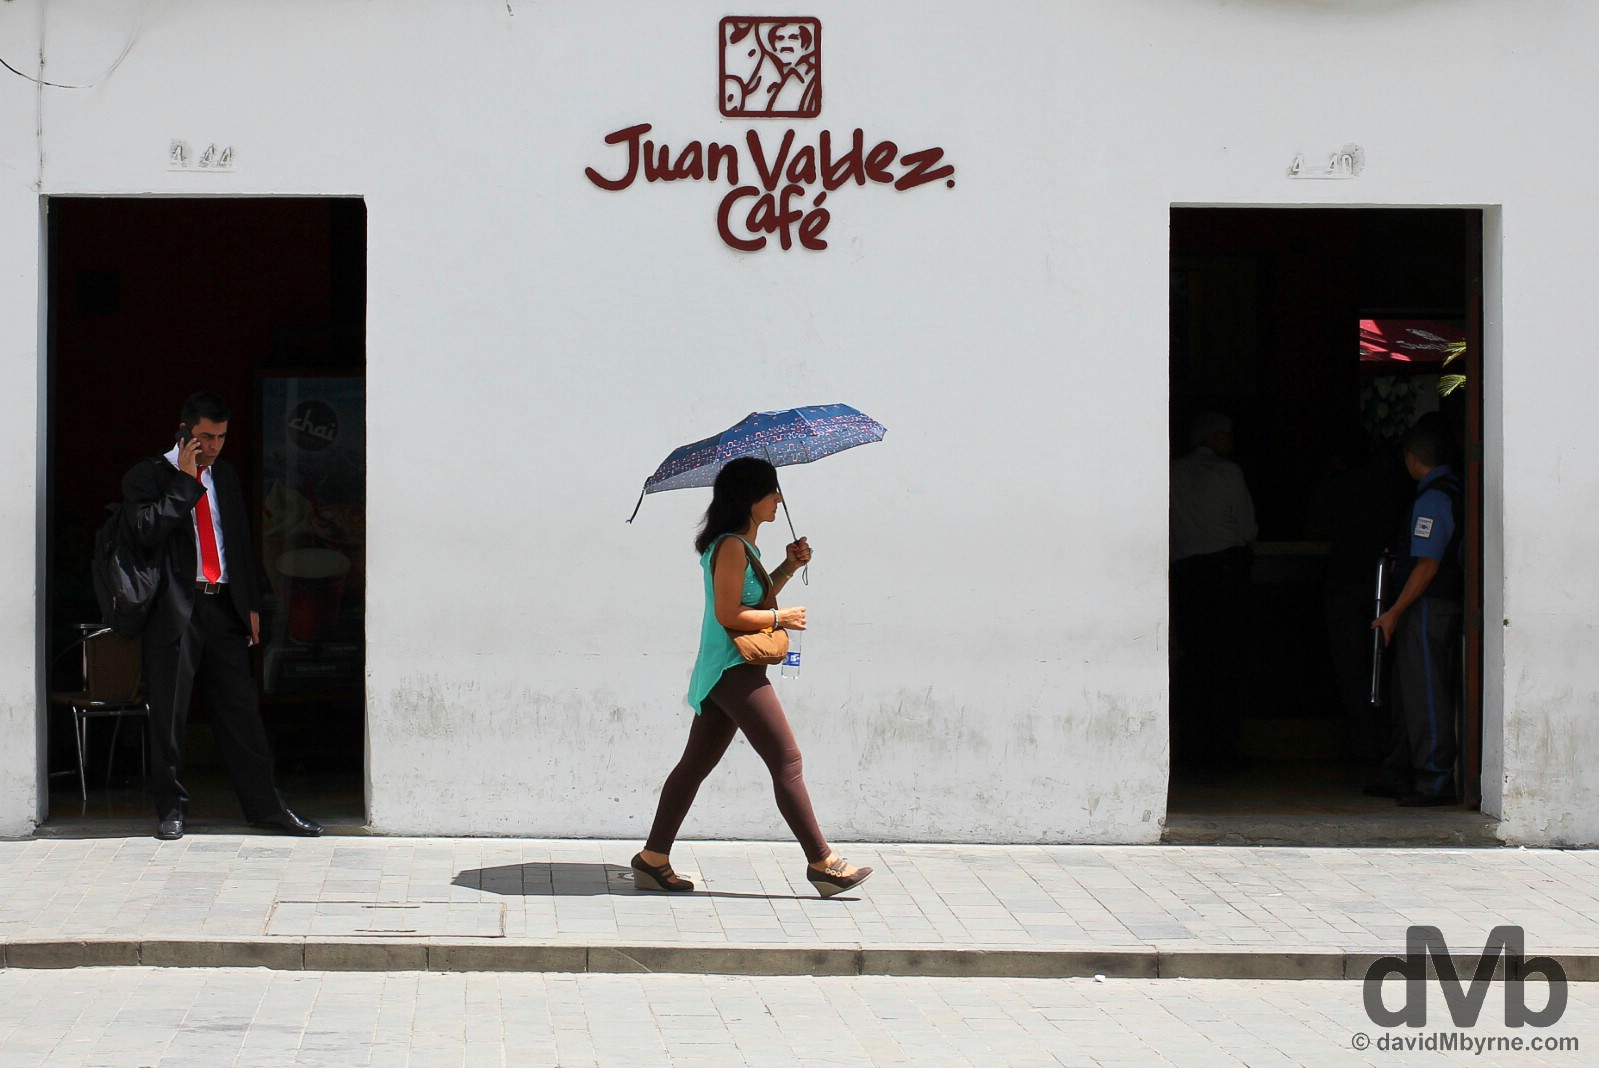 Juan Valdez Cafe off Parque Caldas in Popayan, Colombia. June 30, 2015.